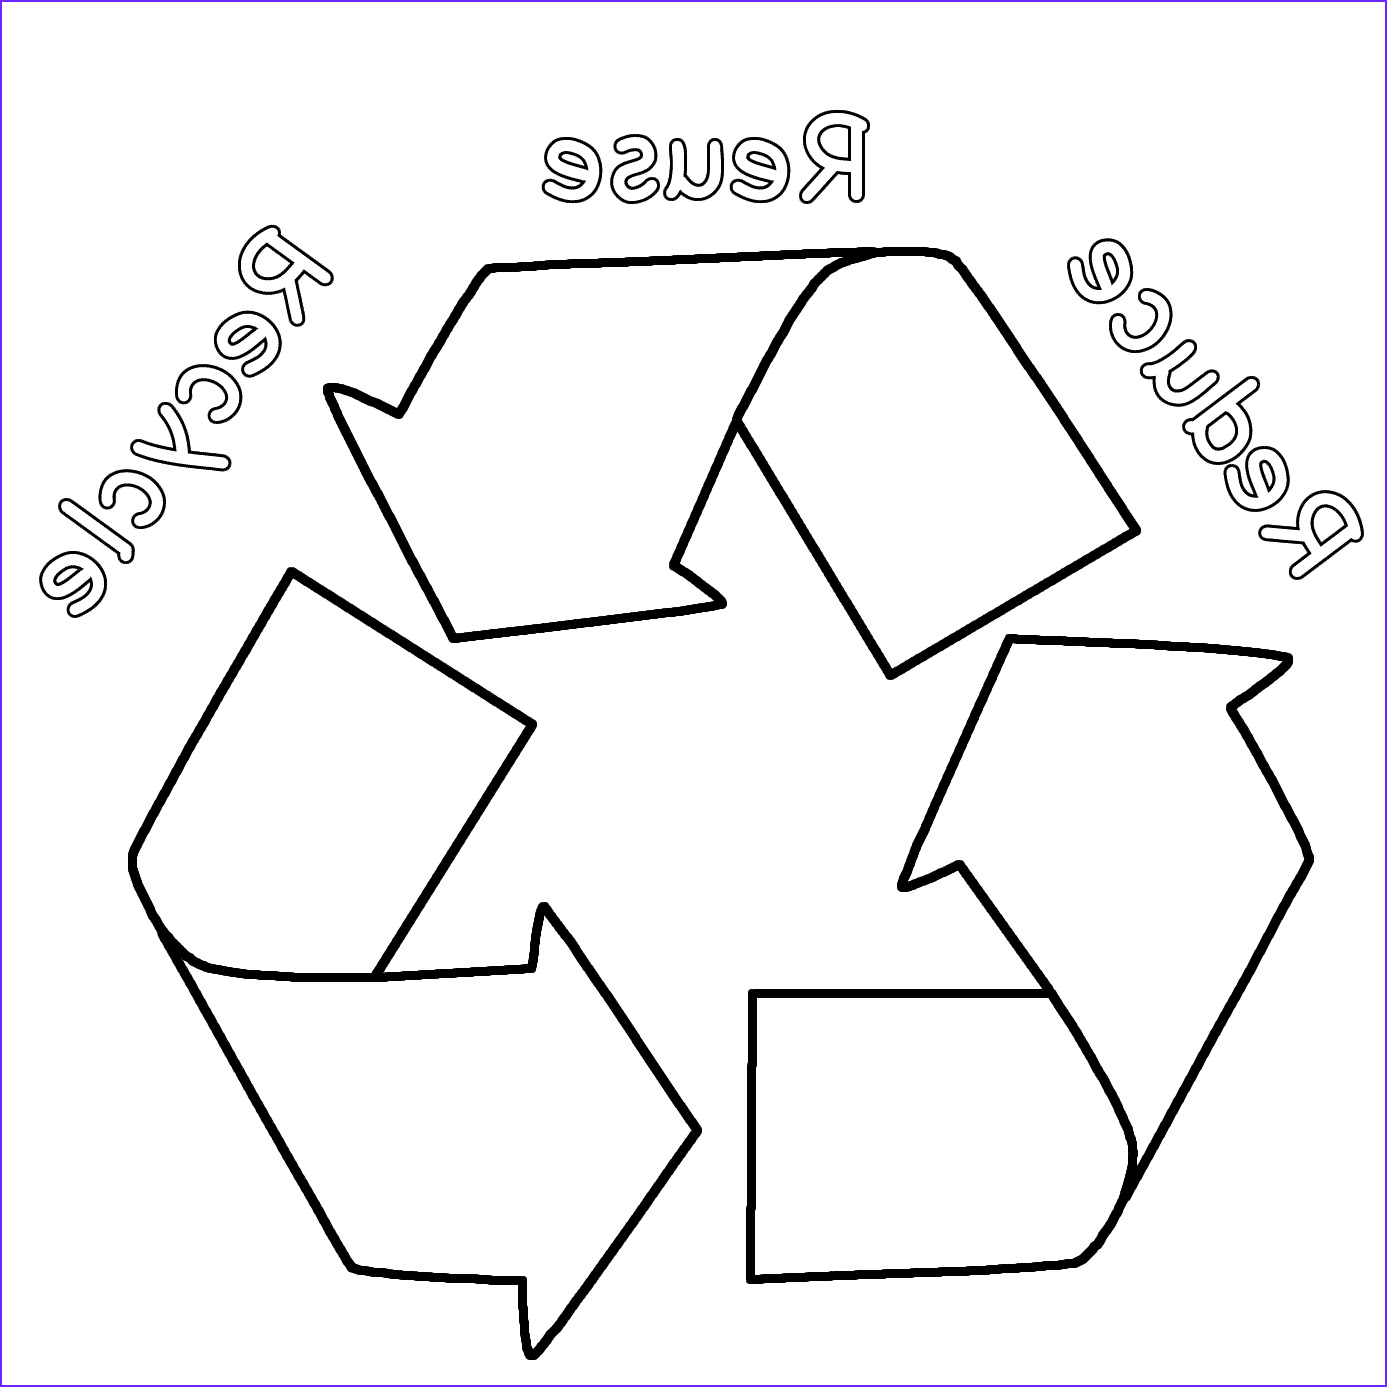 12 Beautiful Recycling Coloring Pages Gallery